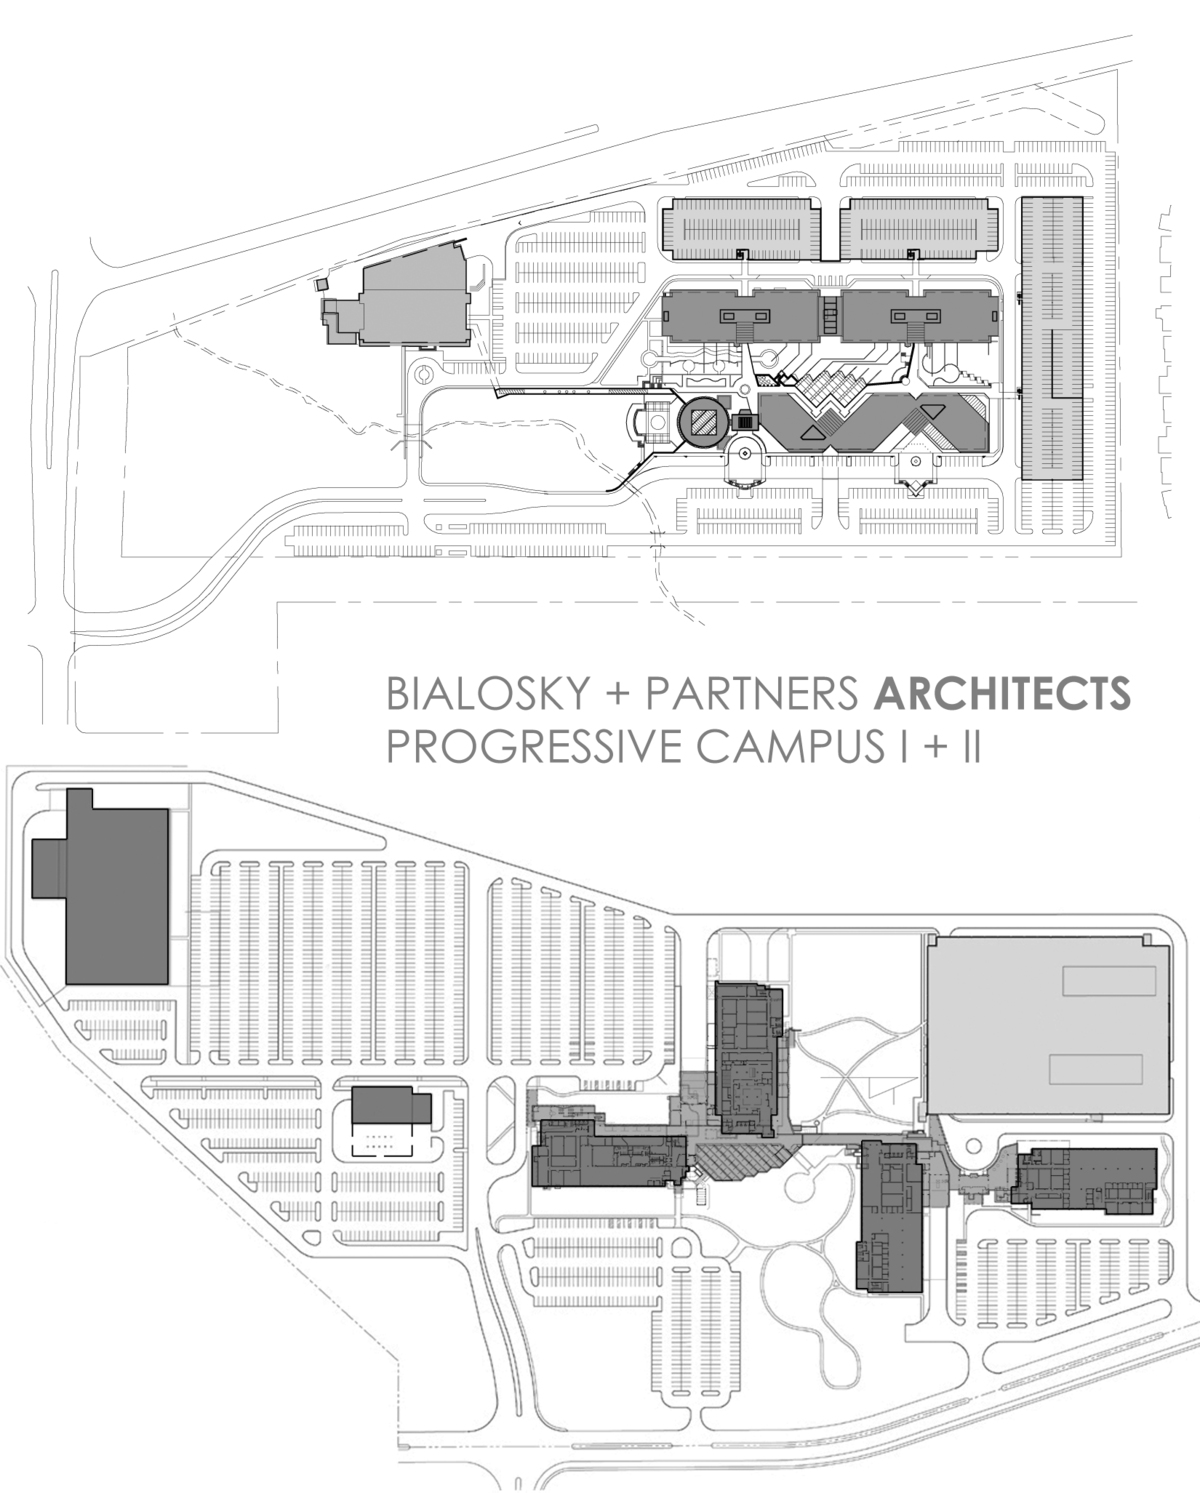 Progressive Campus Site Plans - Bialosky + Partners Architects